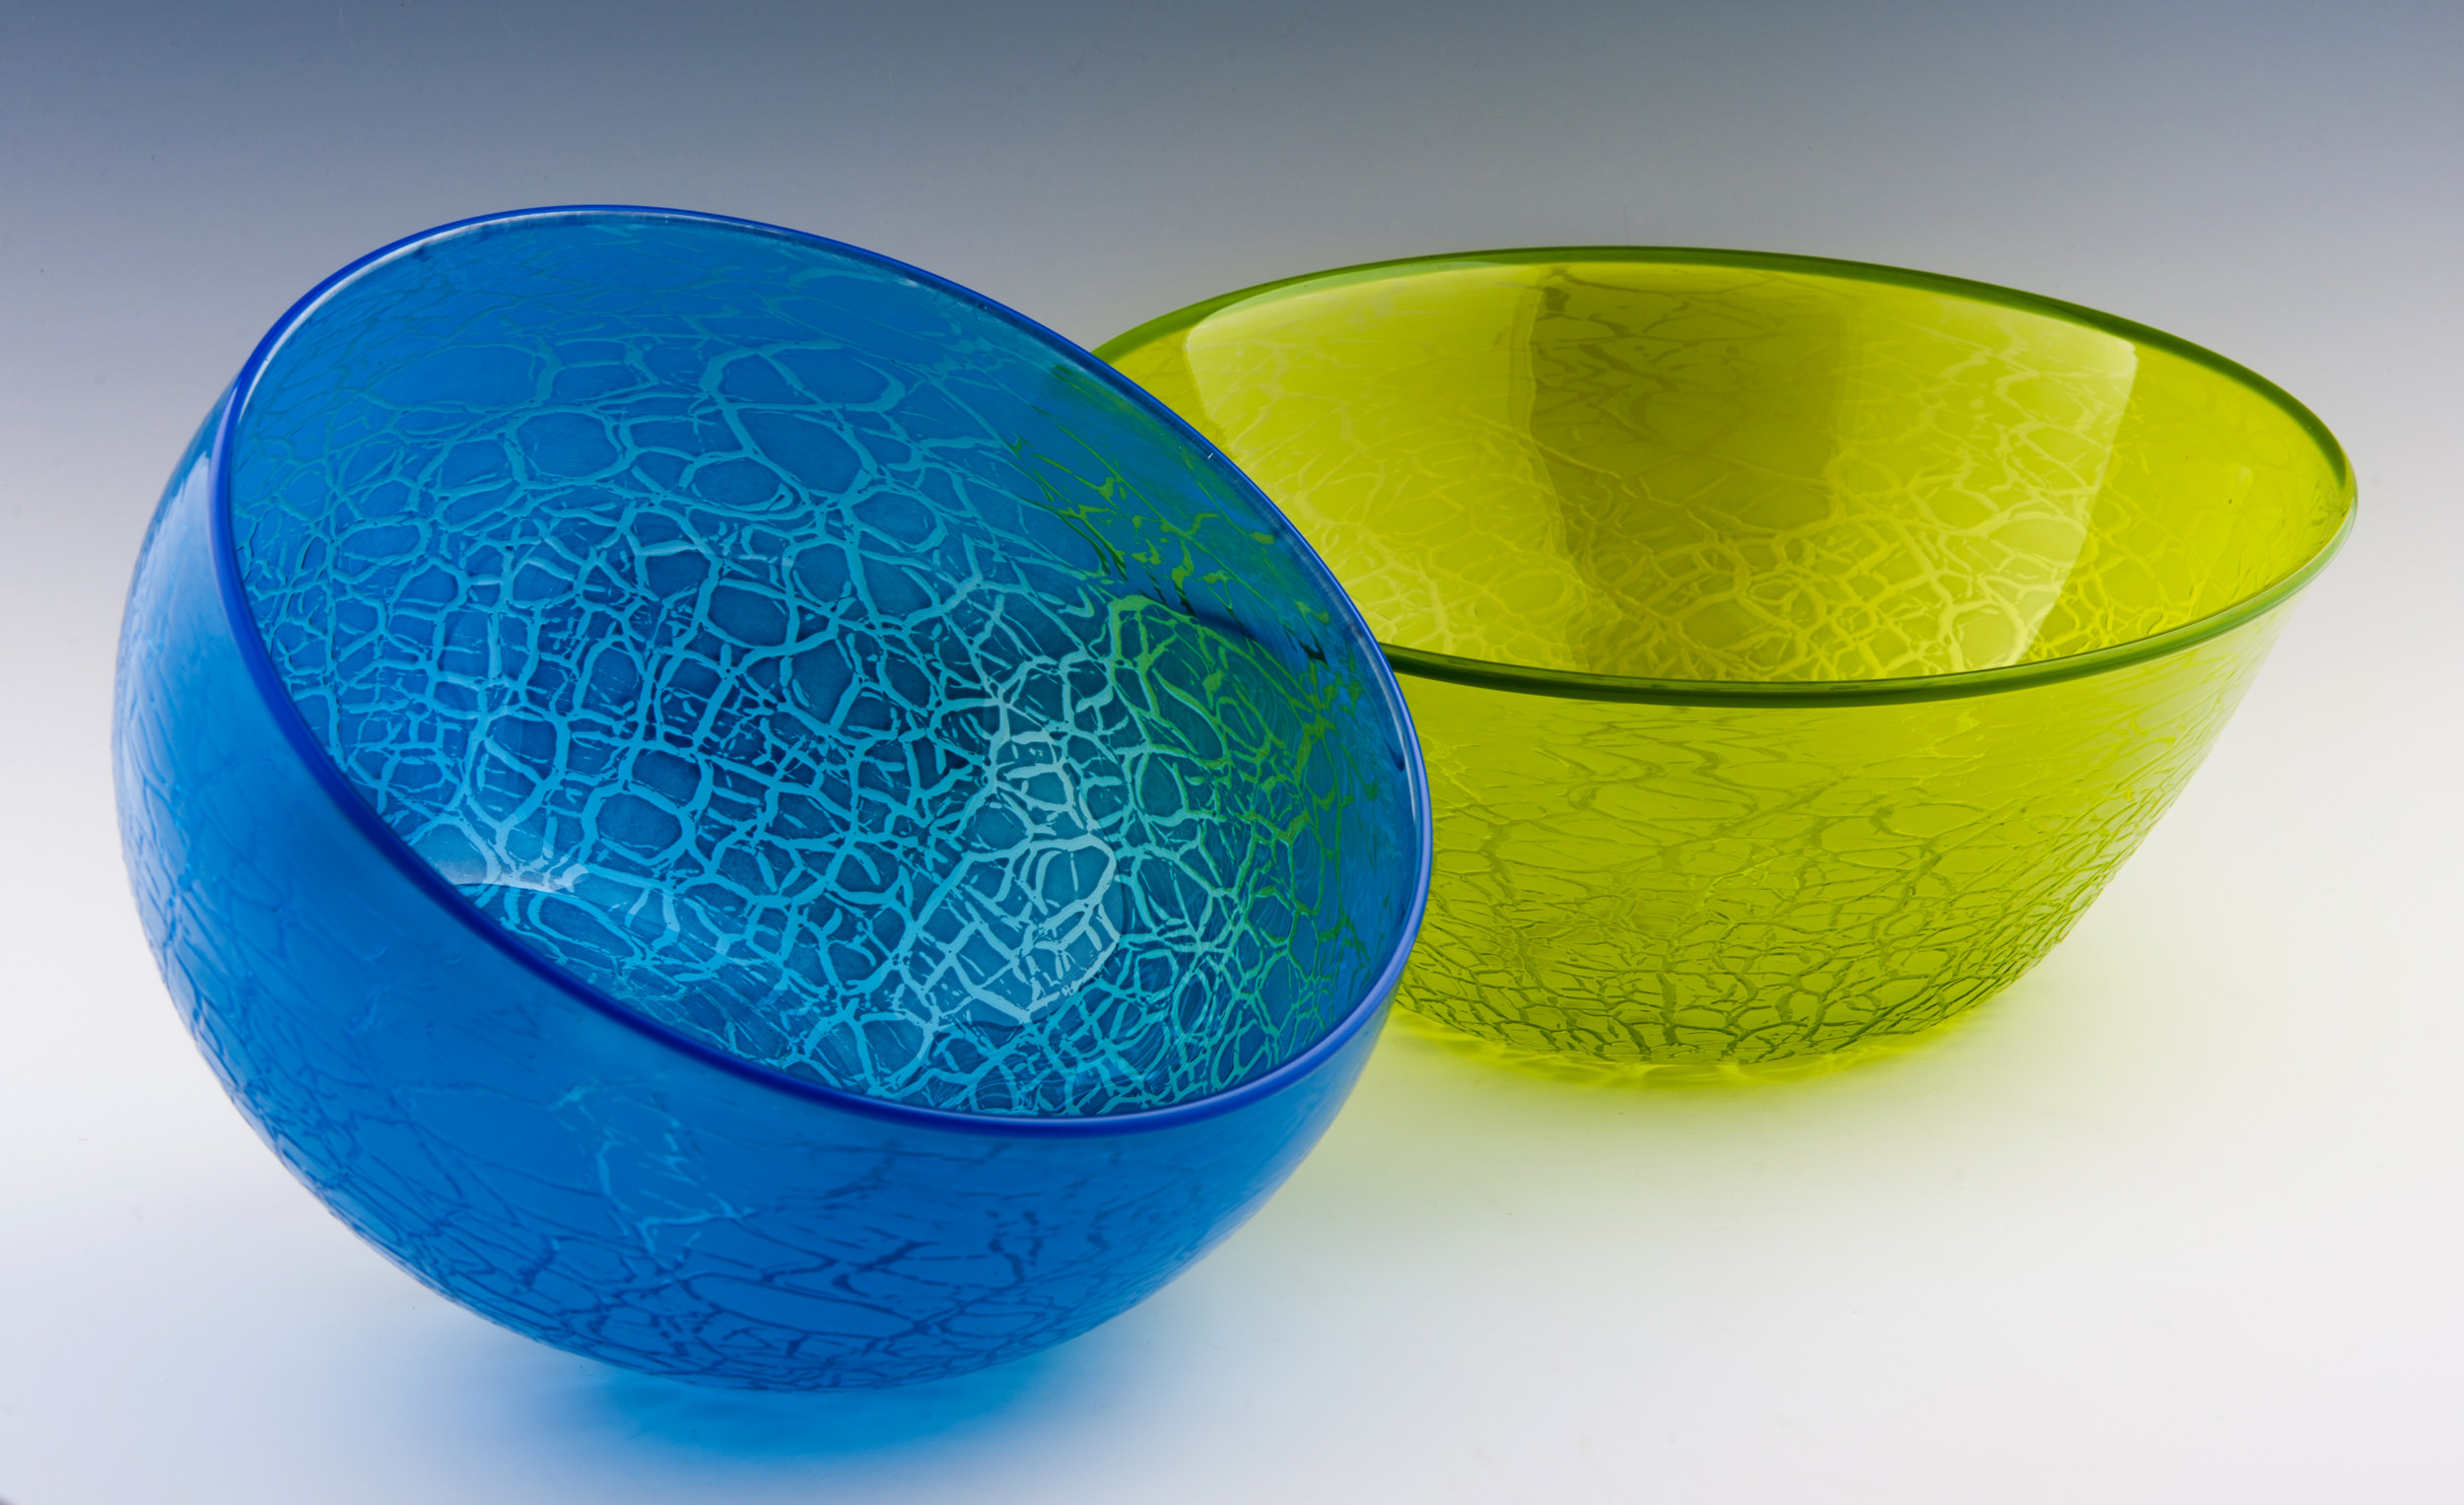 Crackle Bowl, seen here in Blue and Lime.